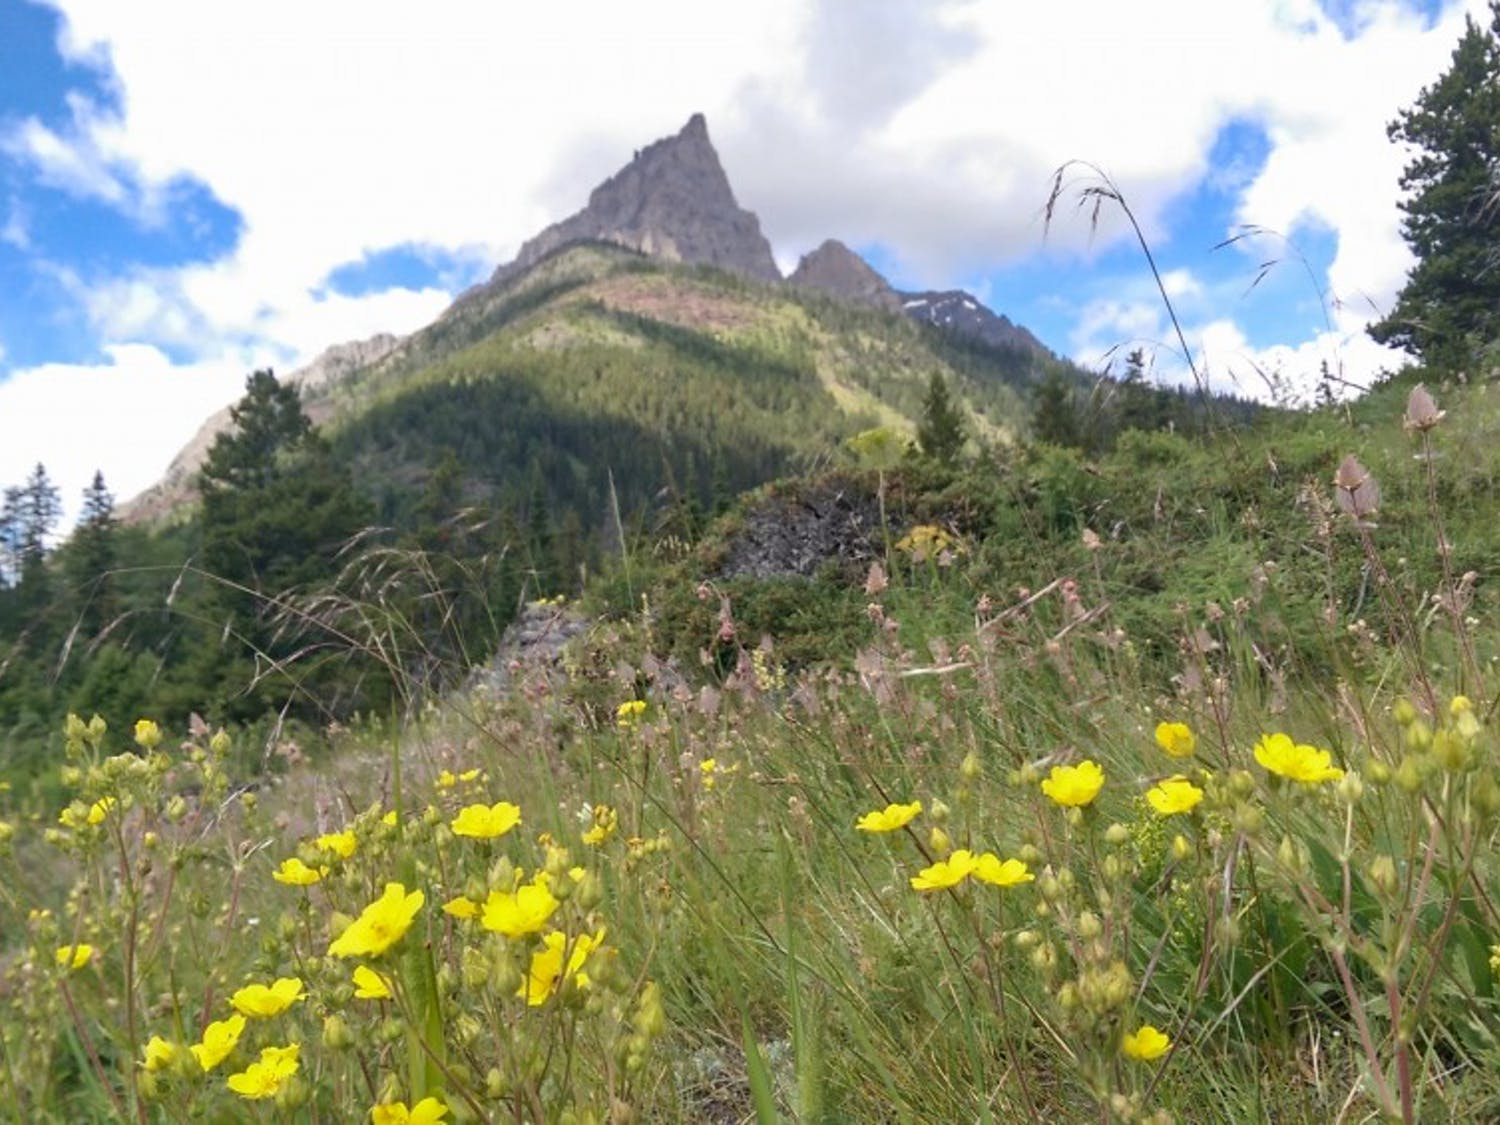 Wildflowers bloom in front of a mountain inGlacier National Park.